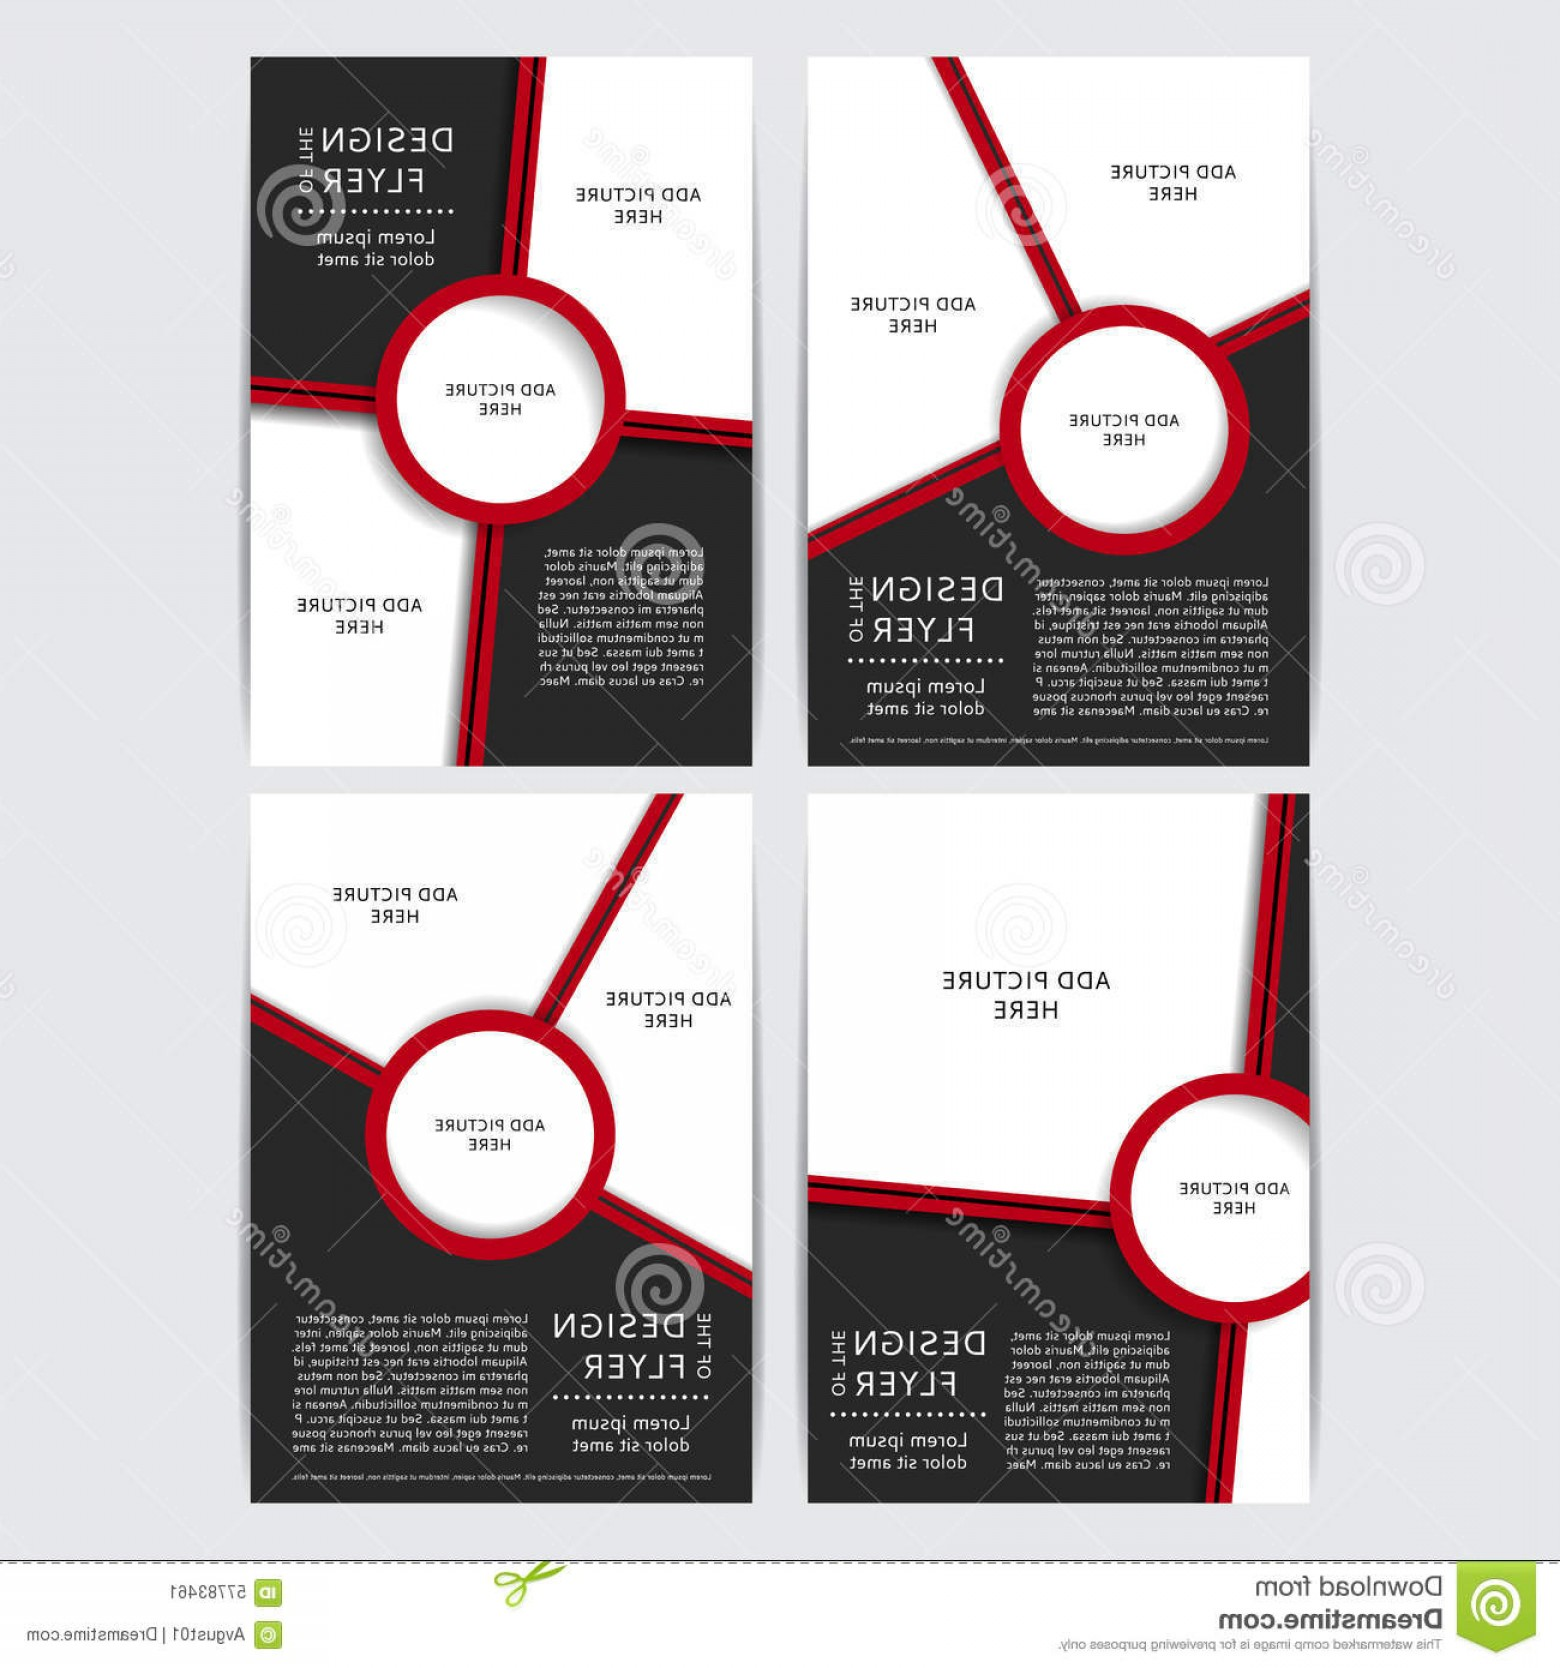 Black And White Flyer Vectors: Stock Illustration Set Design Red Black Flyers Vector Illustration Poster Templates Your Business Image